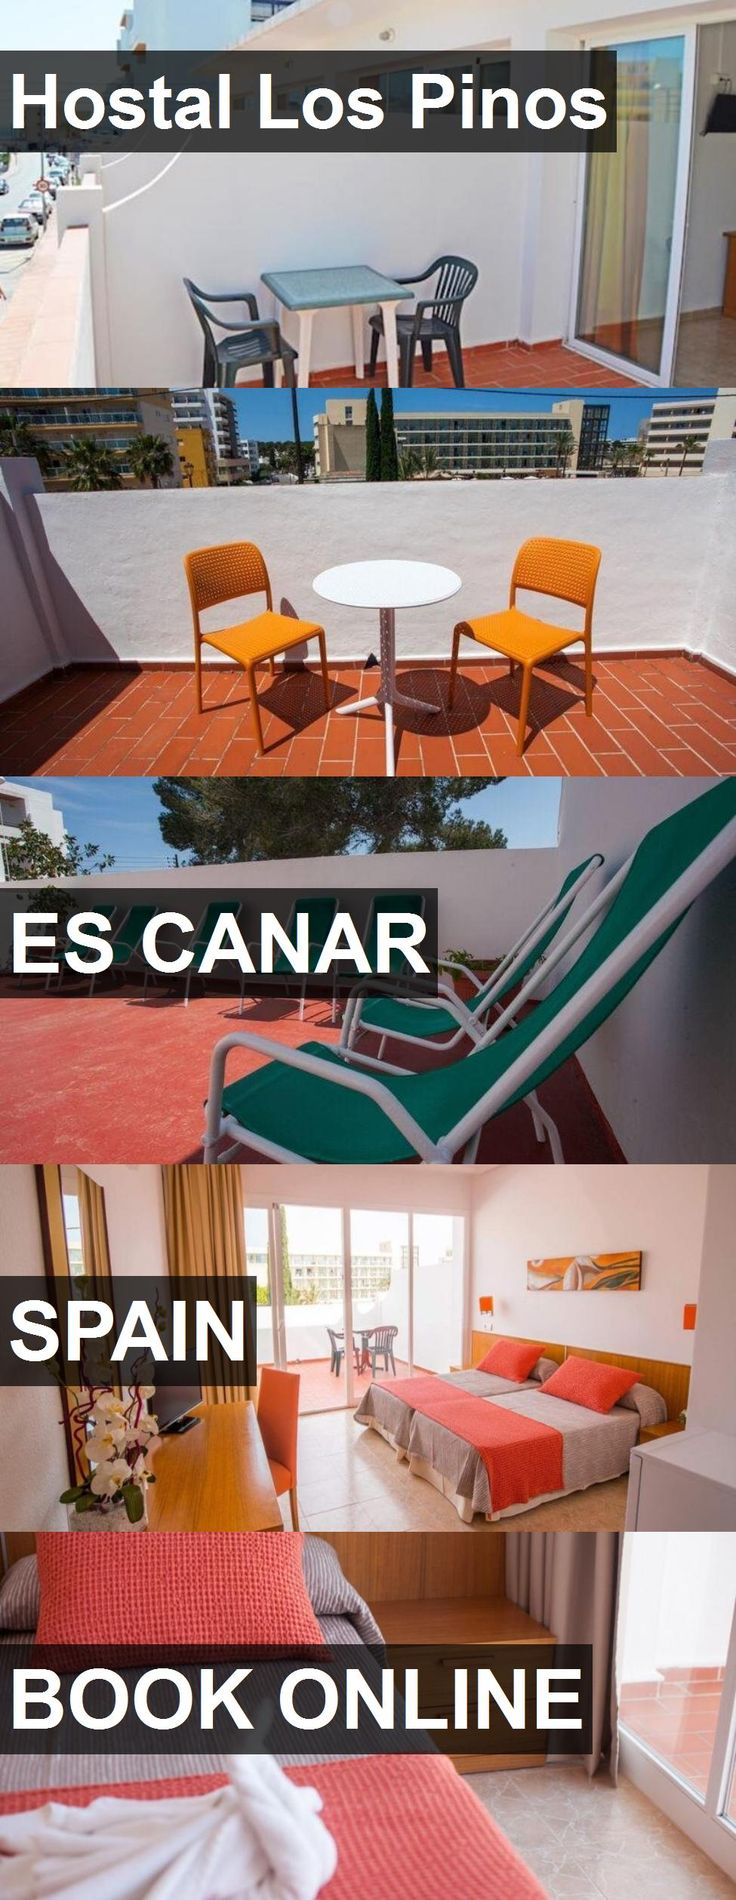 Hotel Hostal Los Pinos in Es Canar, Spain. For more information, photos, reviews and best prices please follow the link. #Spain #EsCanar #HostalLosPinos #hotel #travel #vacation